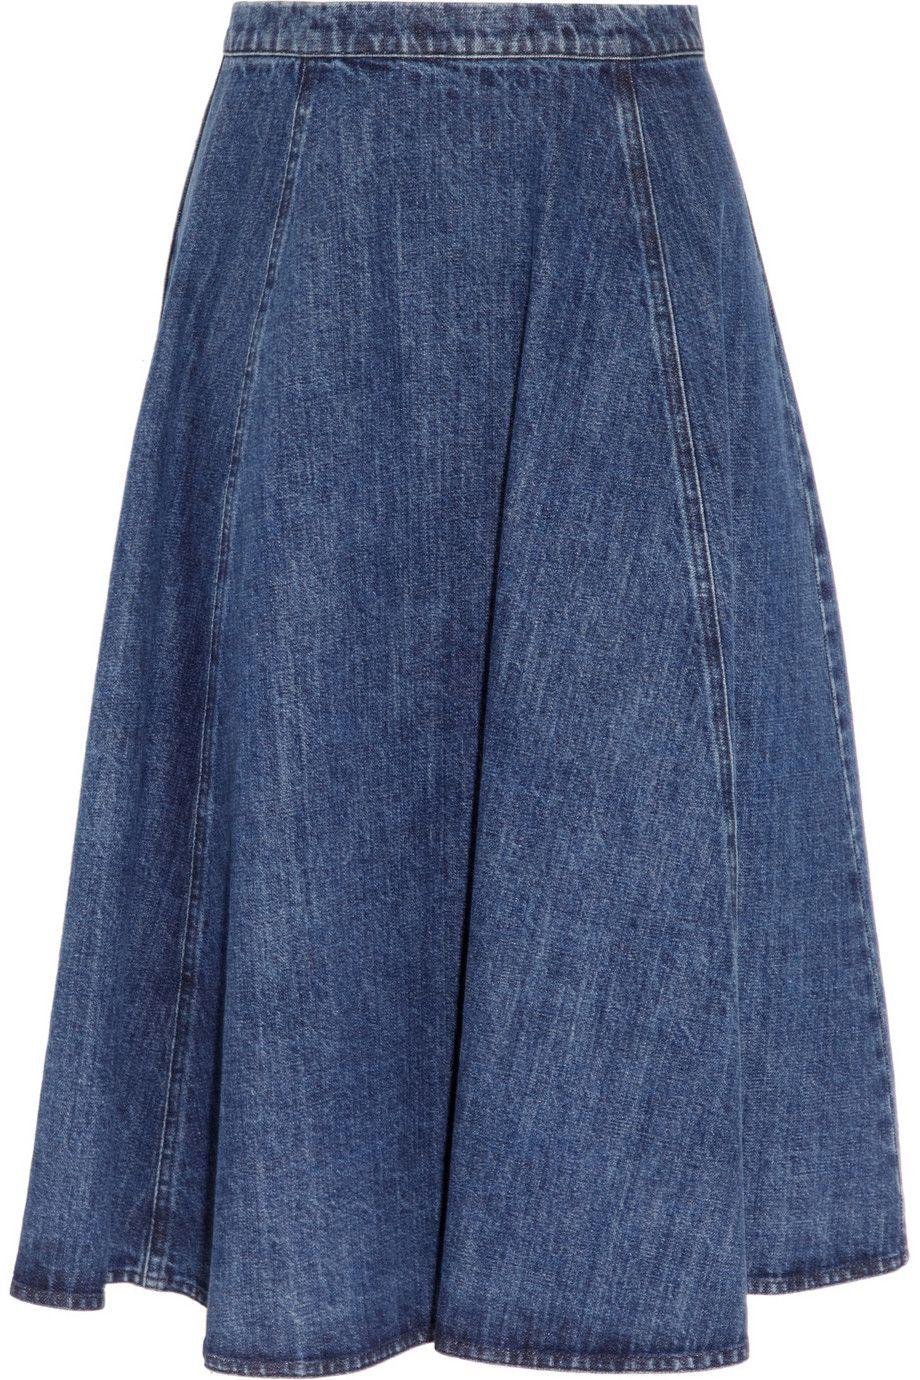 michael kors flared denim skirt aphrochic what to wear